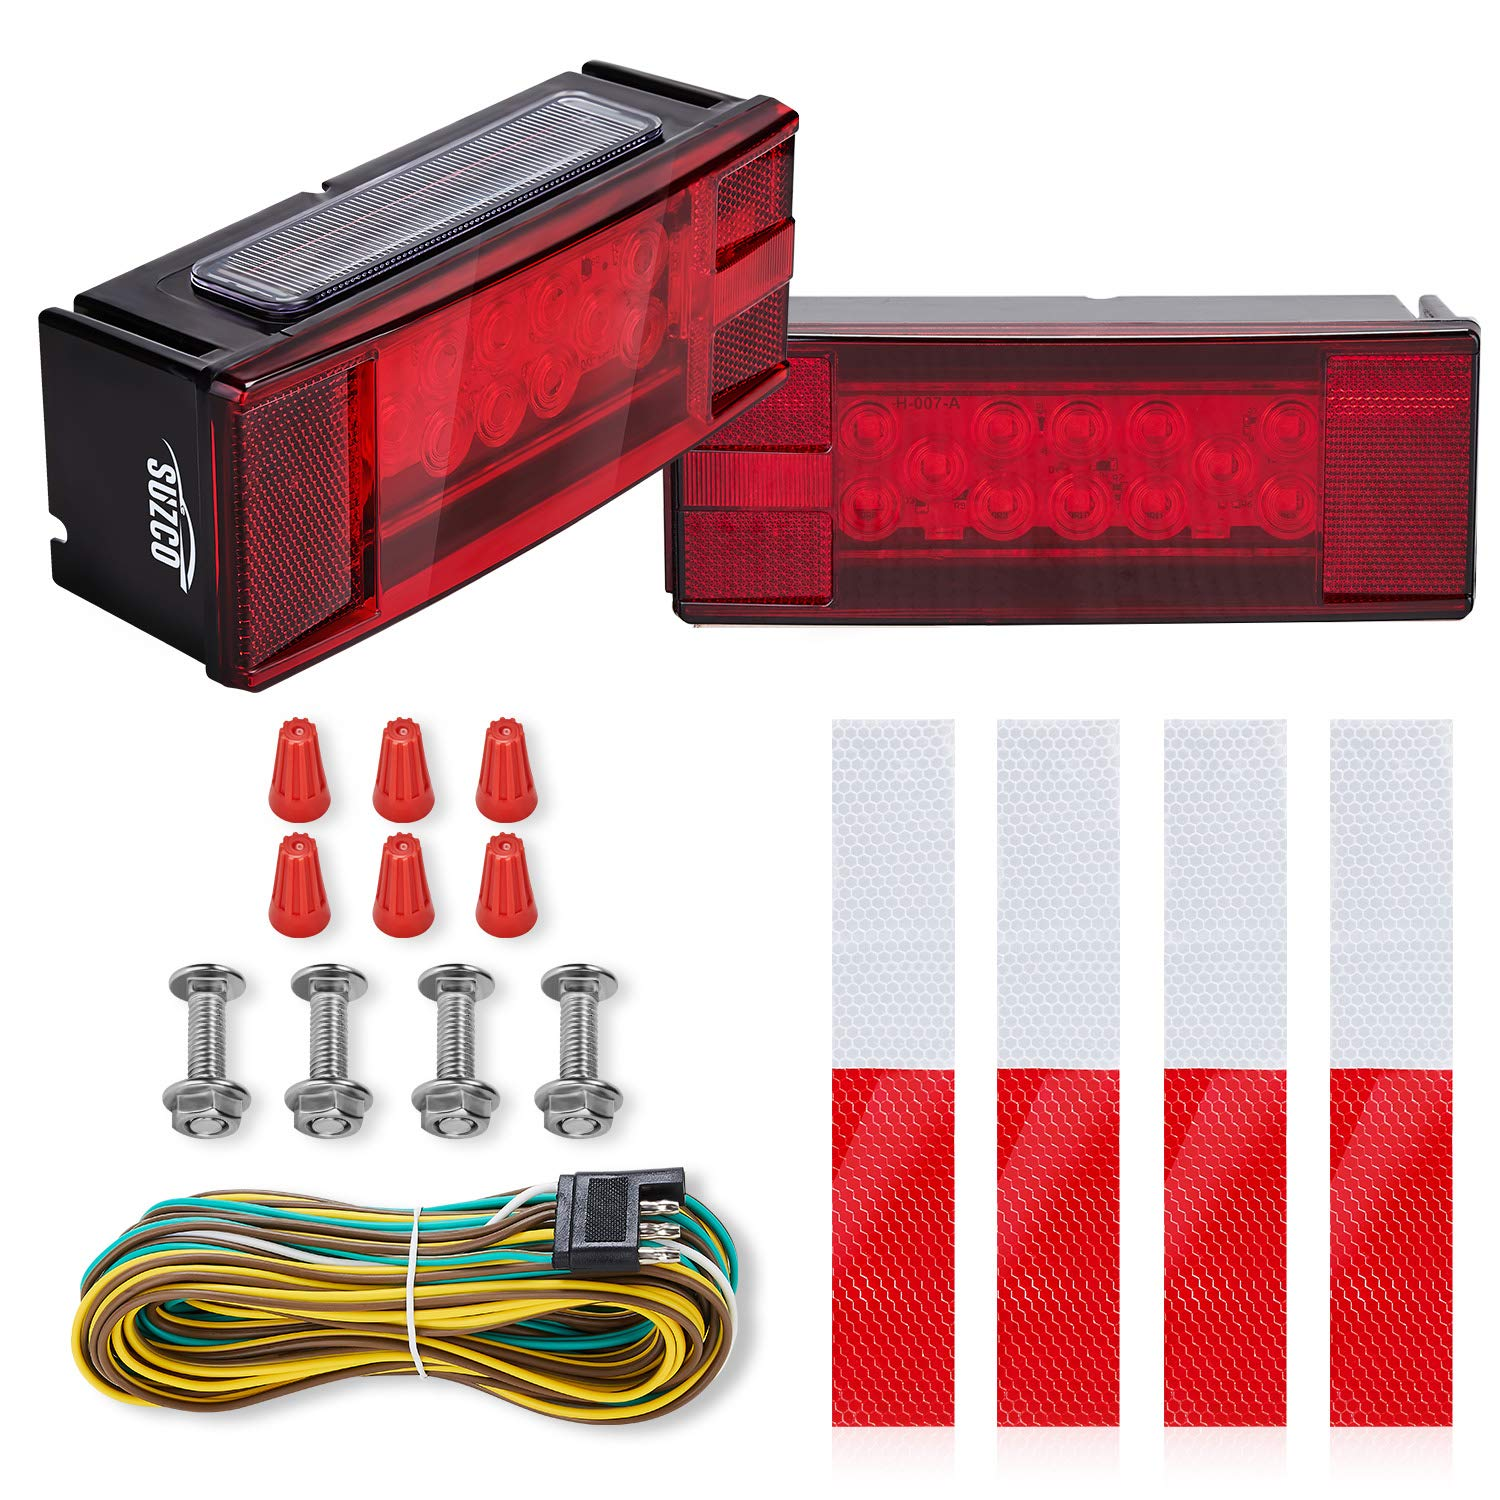 SUZCO Marine Boat Led Trailer Tail Wiring Lights Kit Submersible 12V, Low Profile Sealed Universal Assembly Waterproof Over 80'' Travel Light Set for Auto RV Truck Camper Snowmobile Rollers by SUZCO